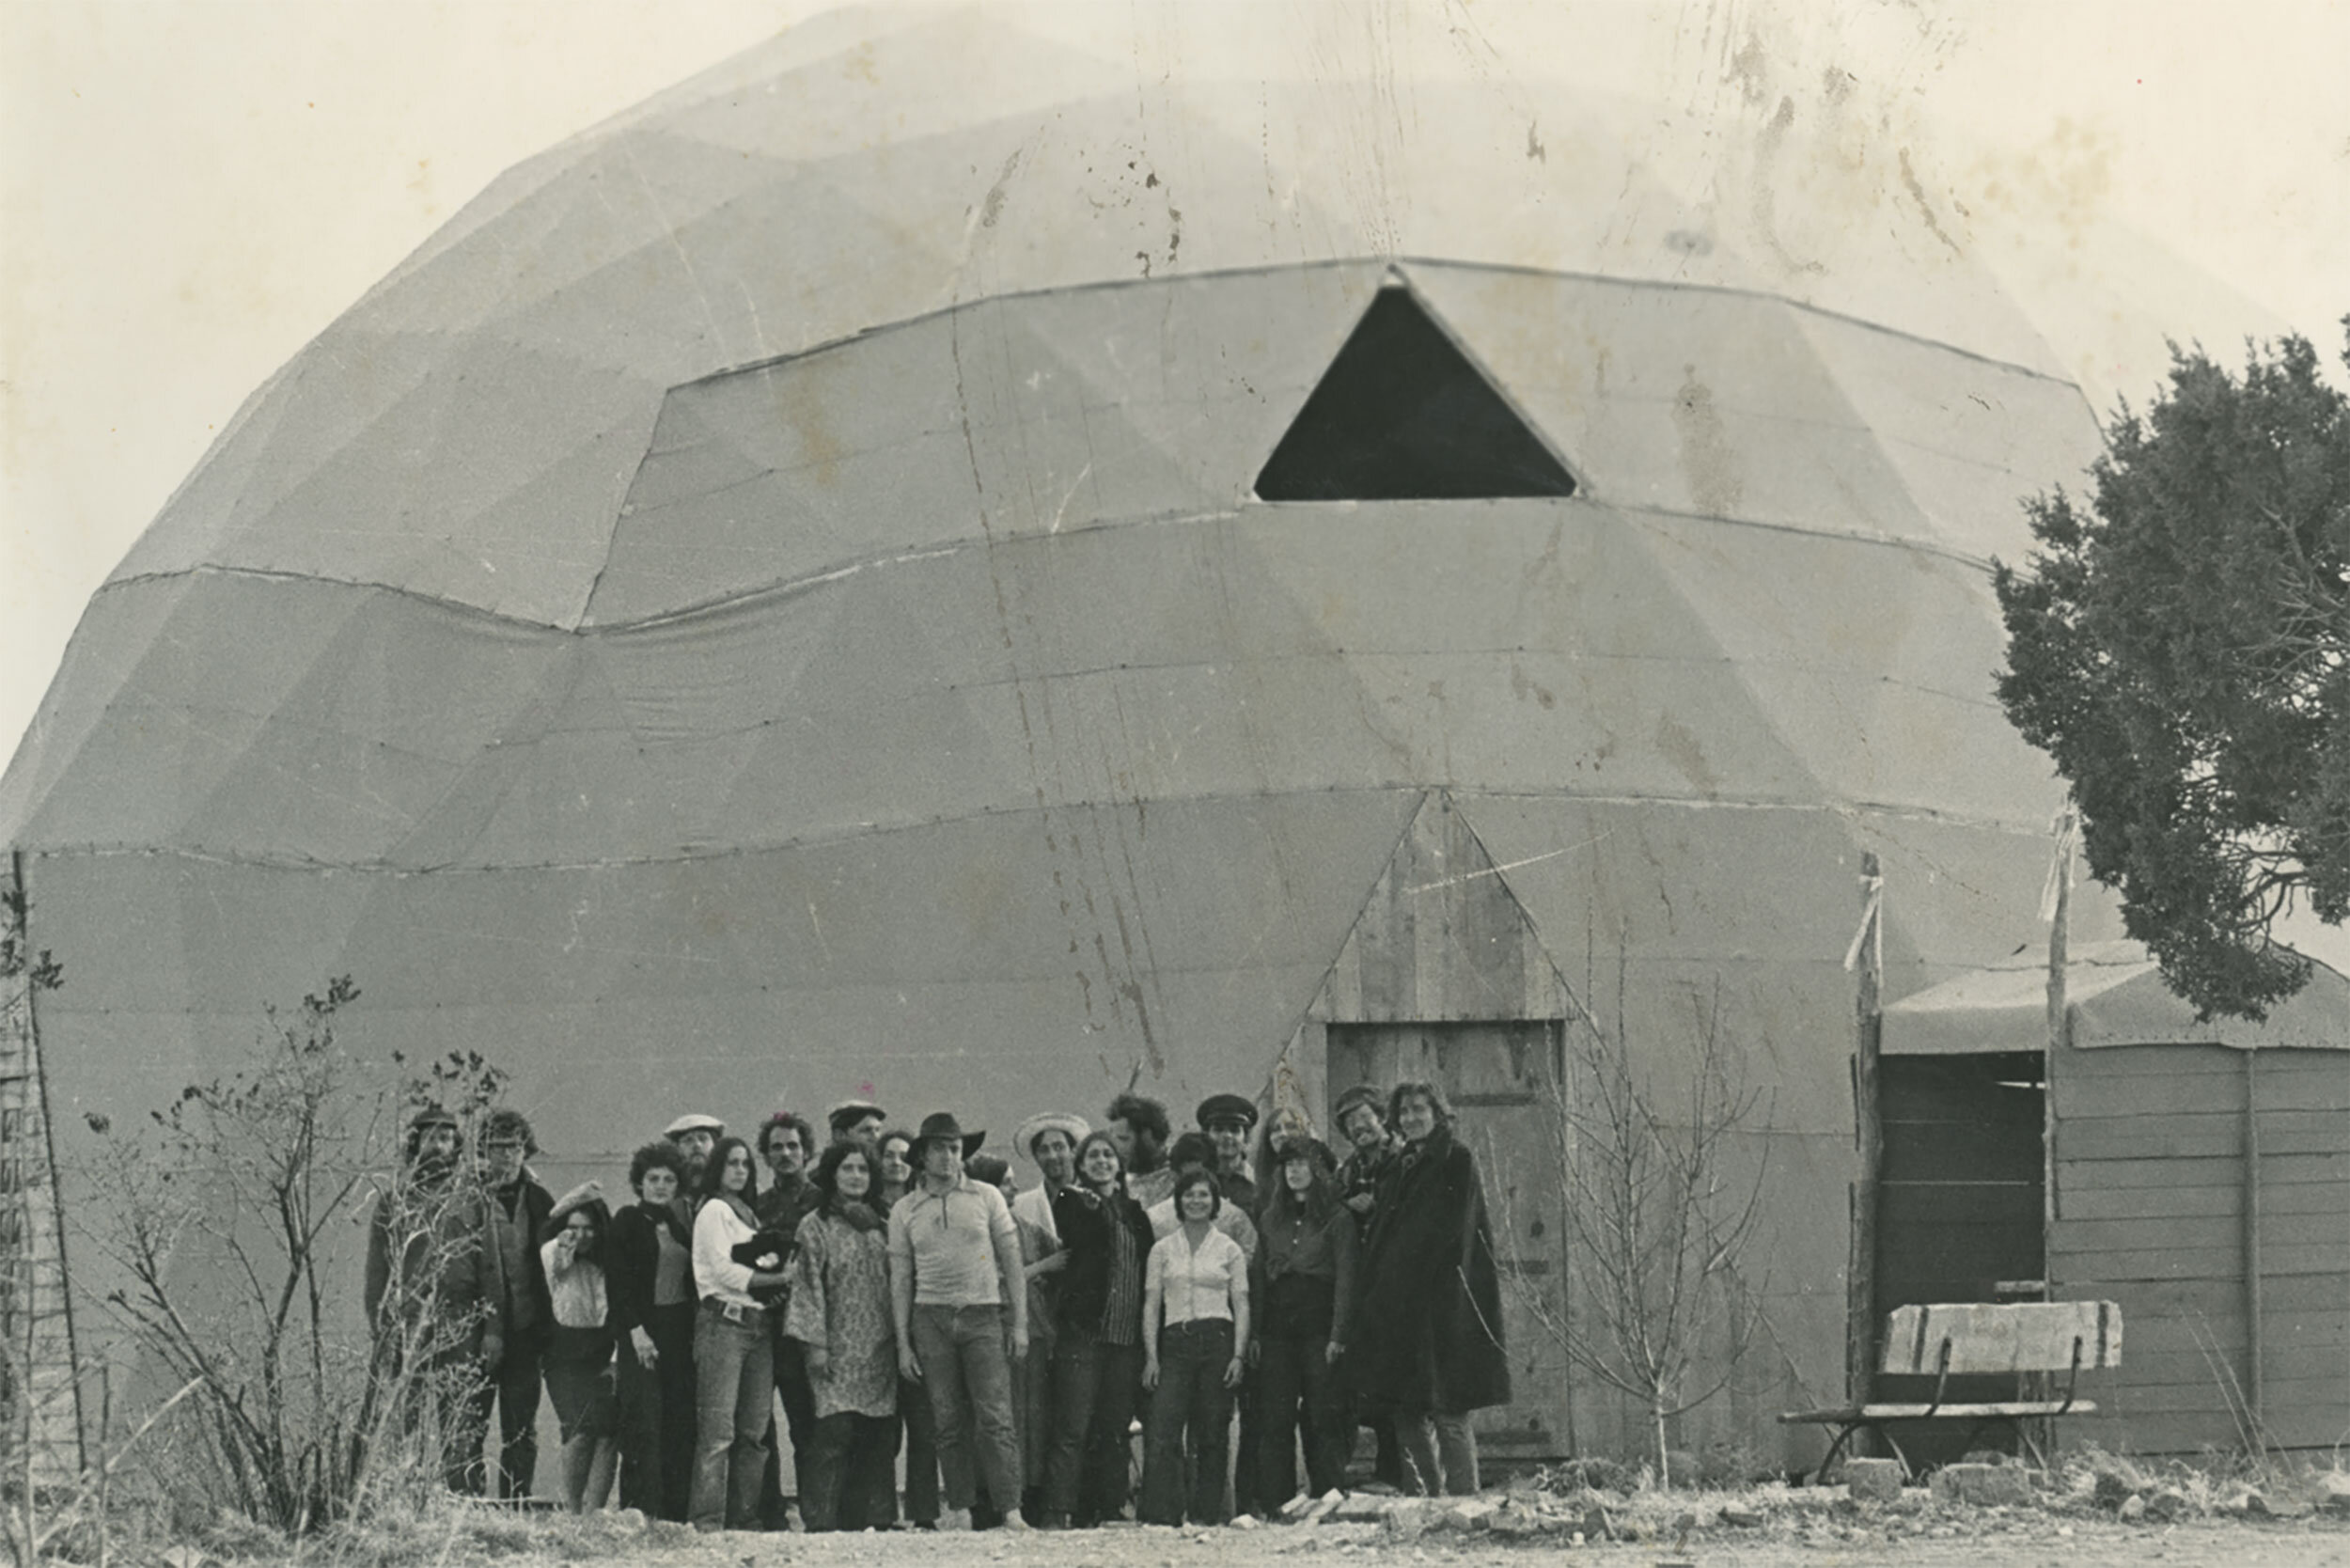 Synergists standing in front of geodesic dome at Synergia Ranch